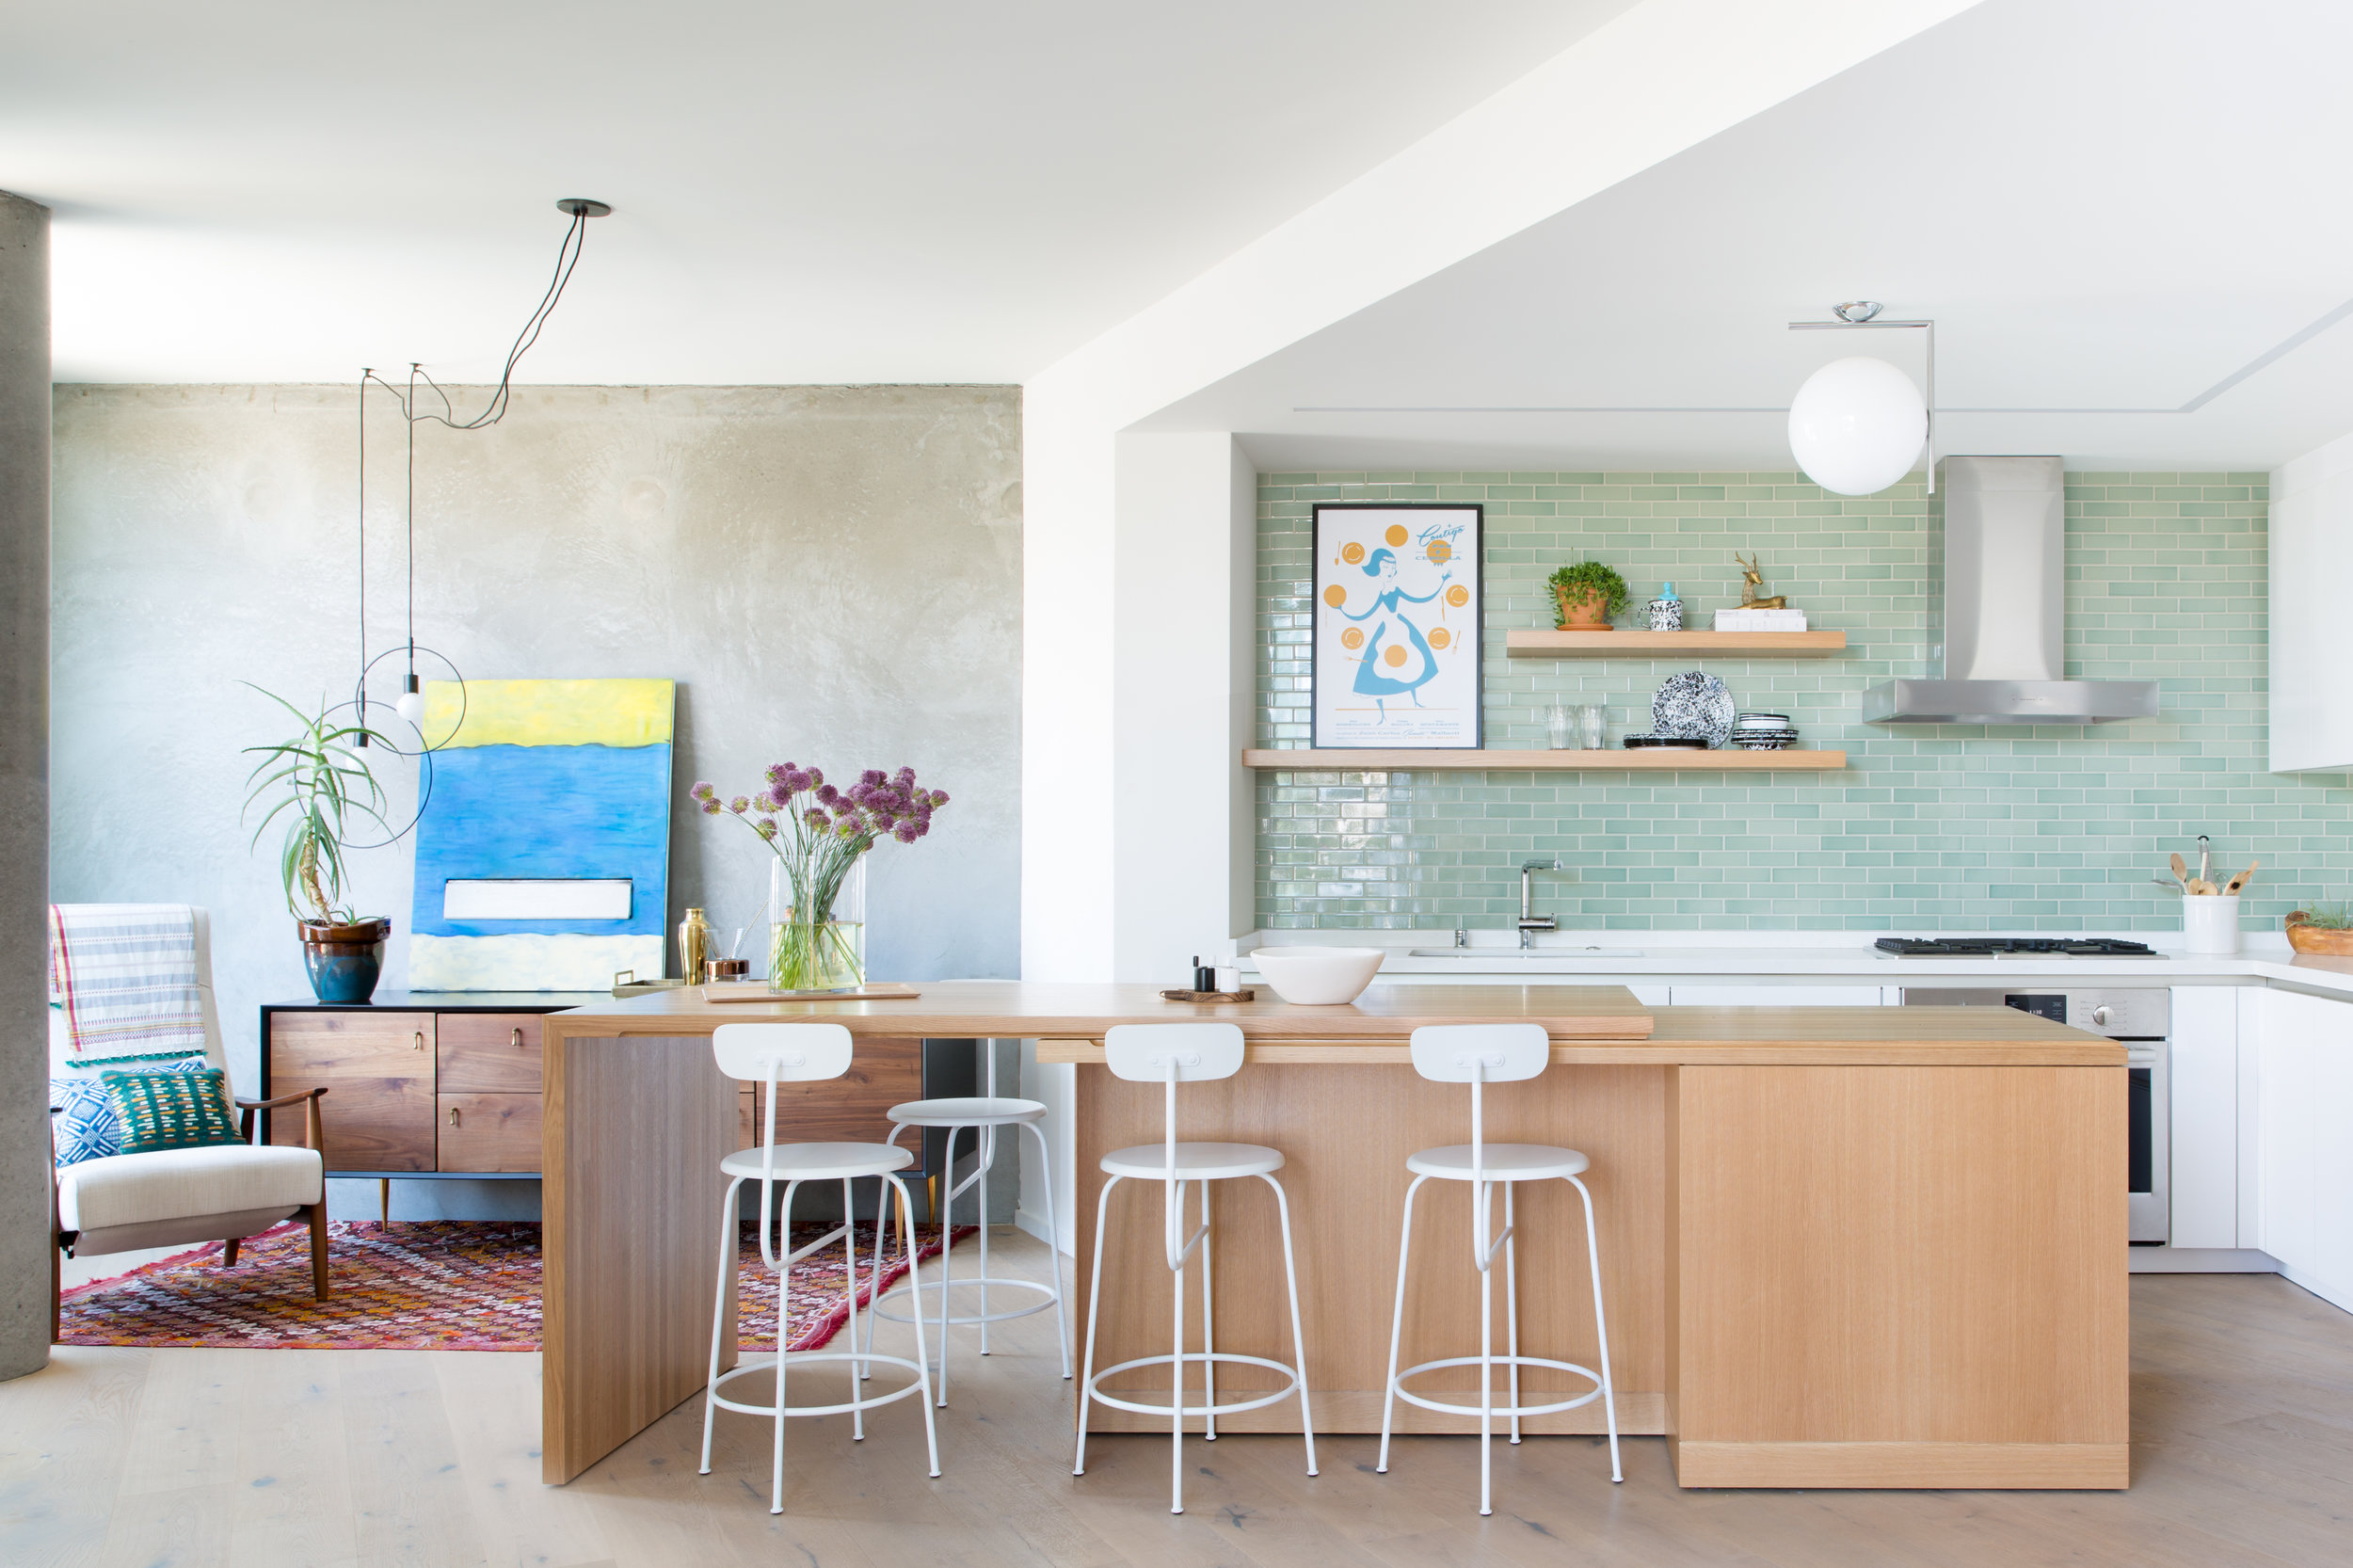 03 RBD Hayes Valley Hip Haven - Bar + Kitchen Island Extended.jpg